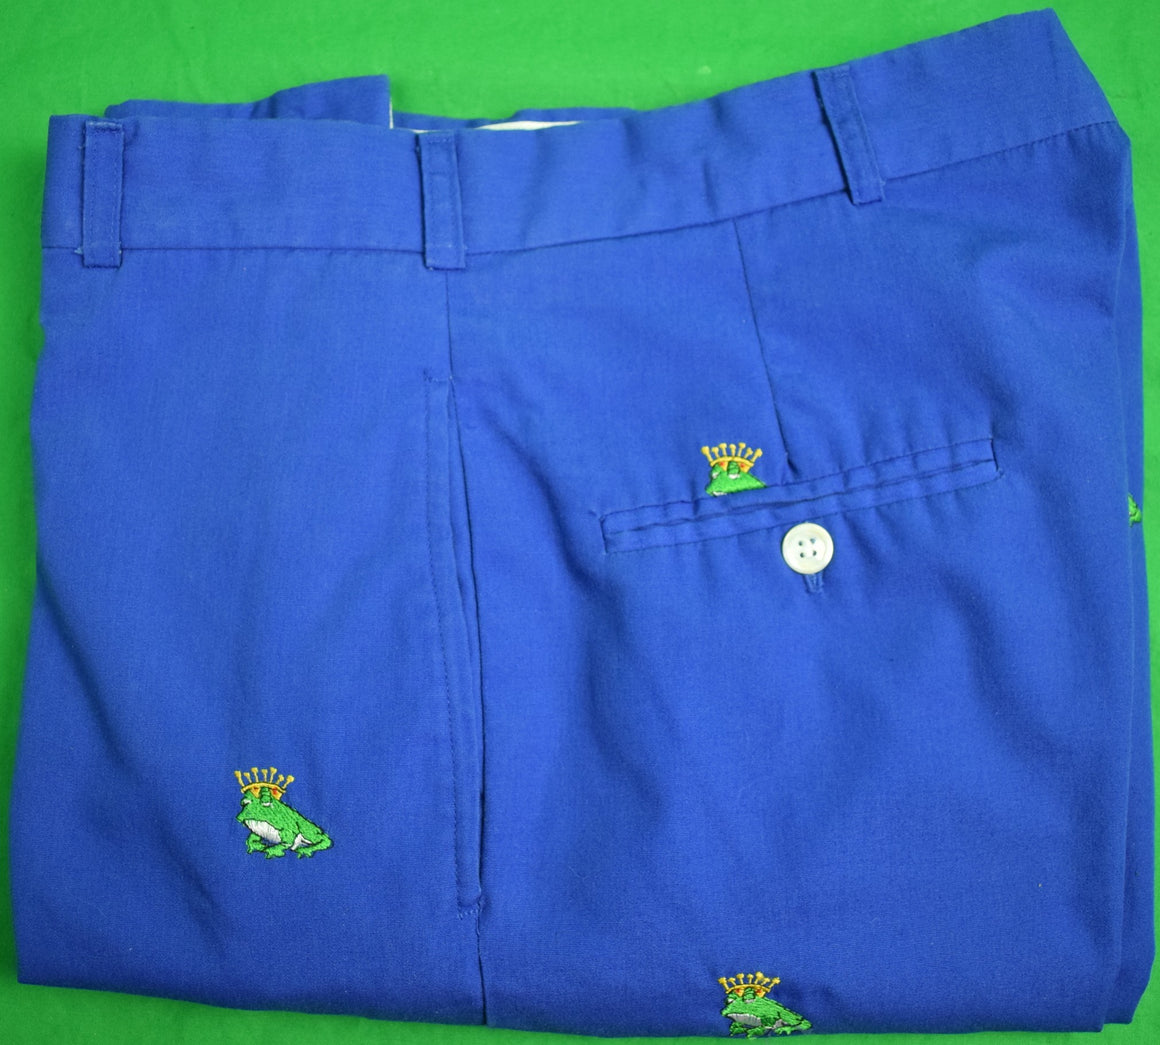 "O'Connell's Royal Blue Poplin w/ Green 'Frog Prince' Trousers Sz: 34""W (Sold!)"